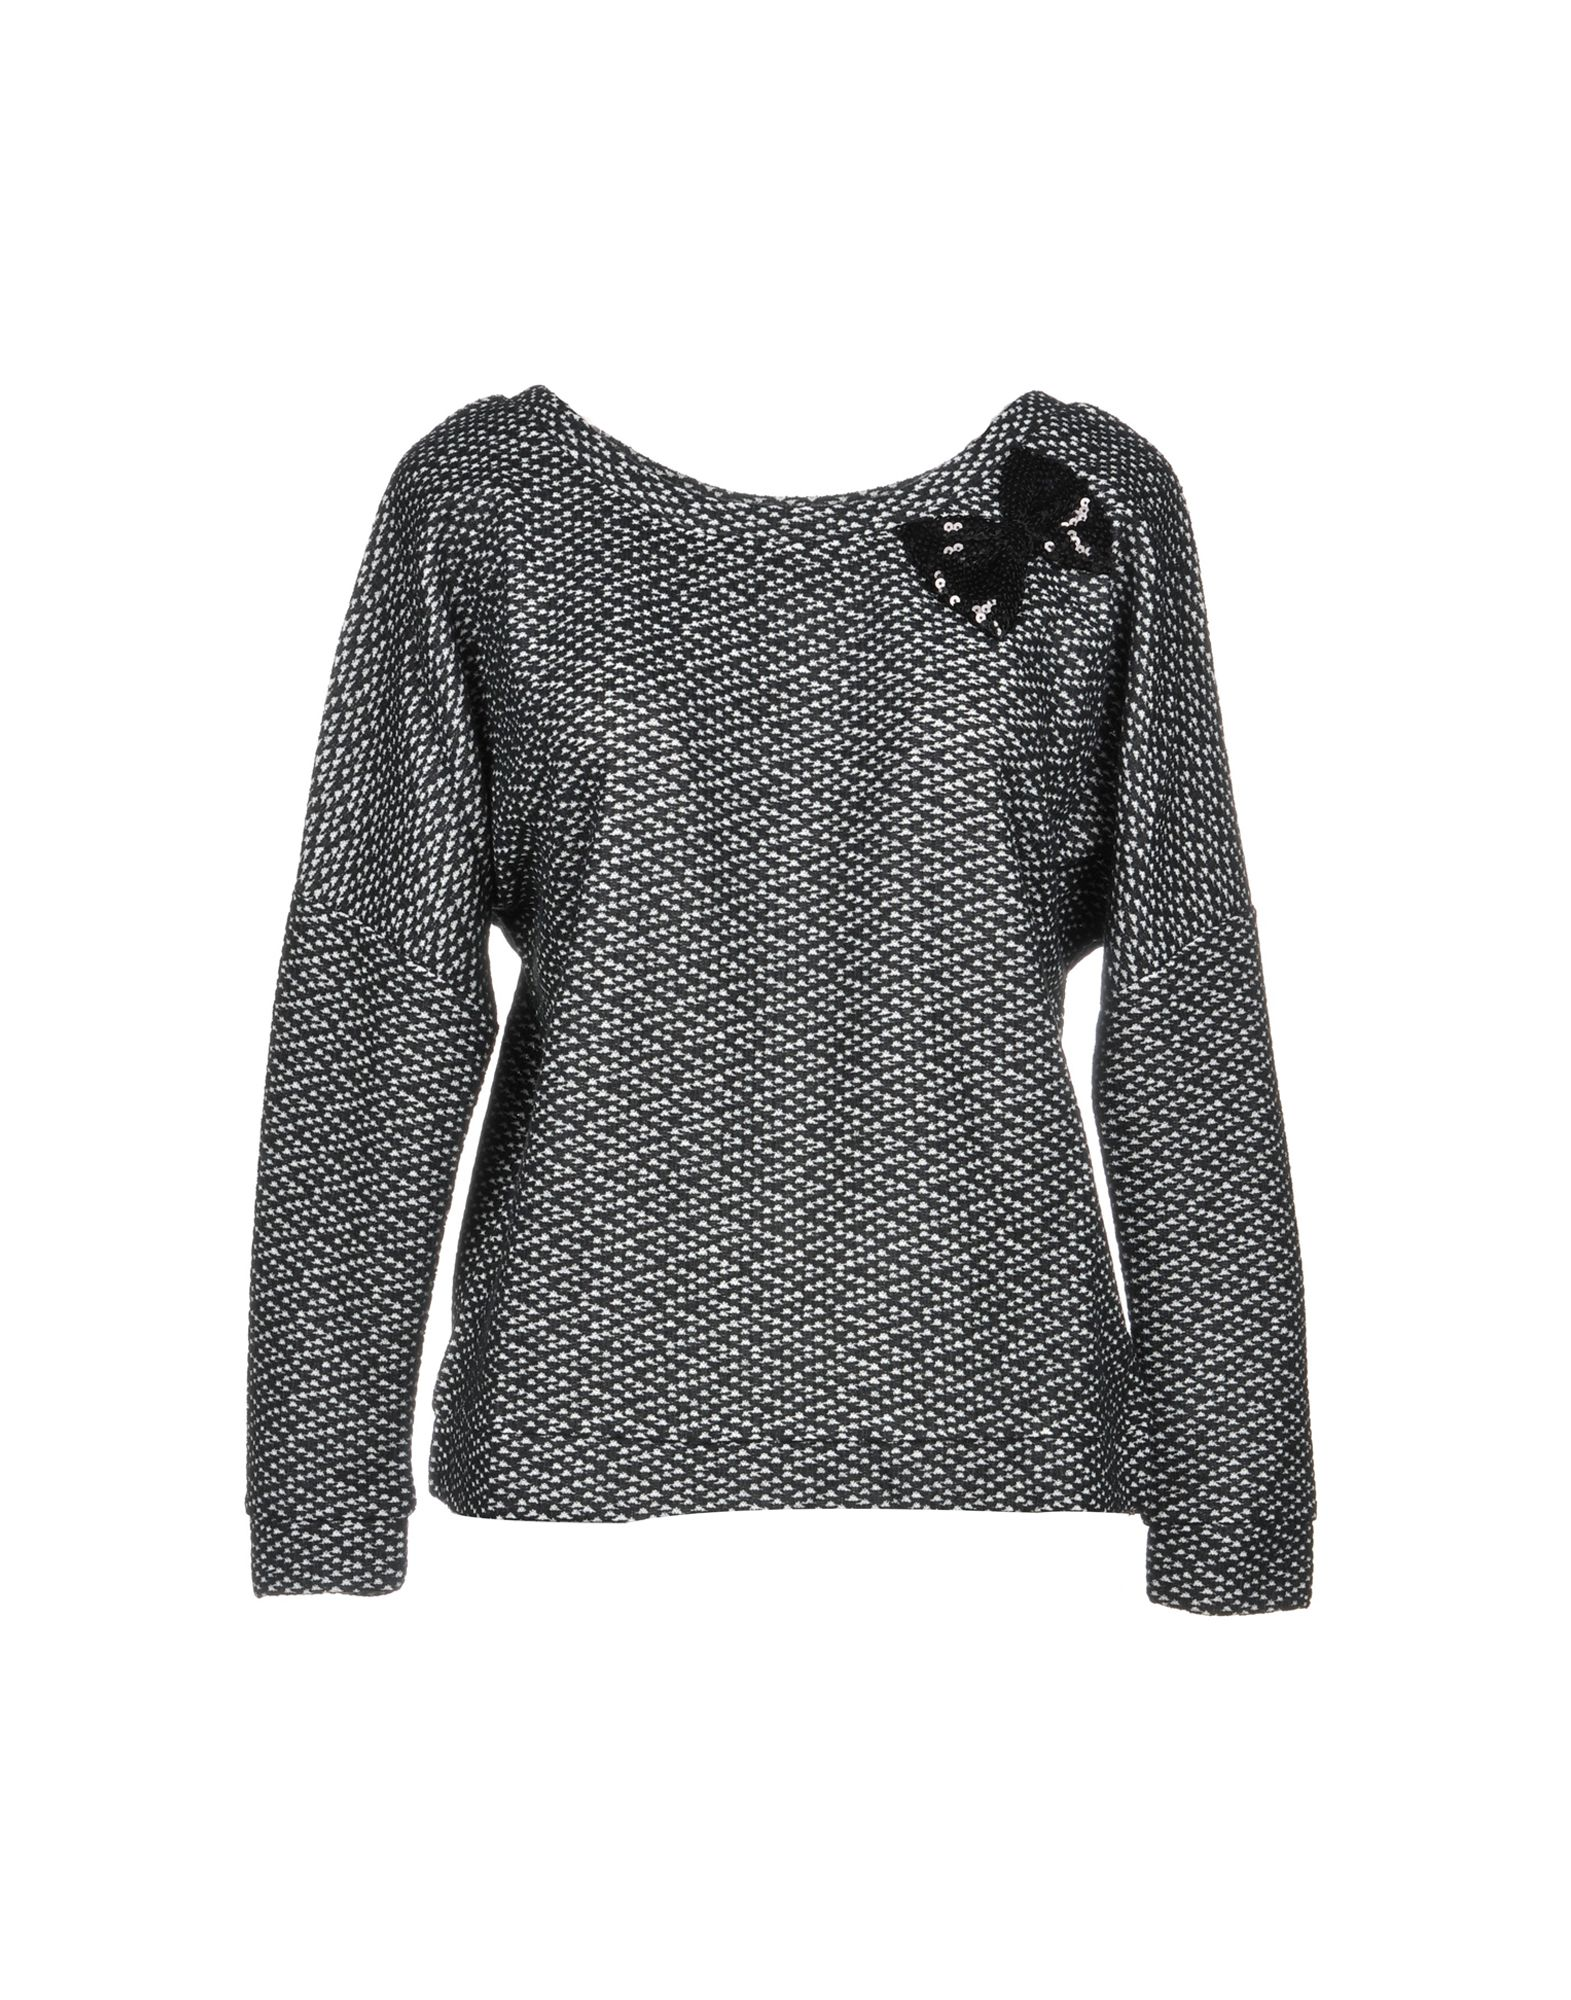 MOLLY BRACKEN Sweater in Black